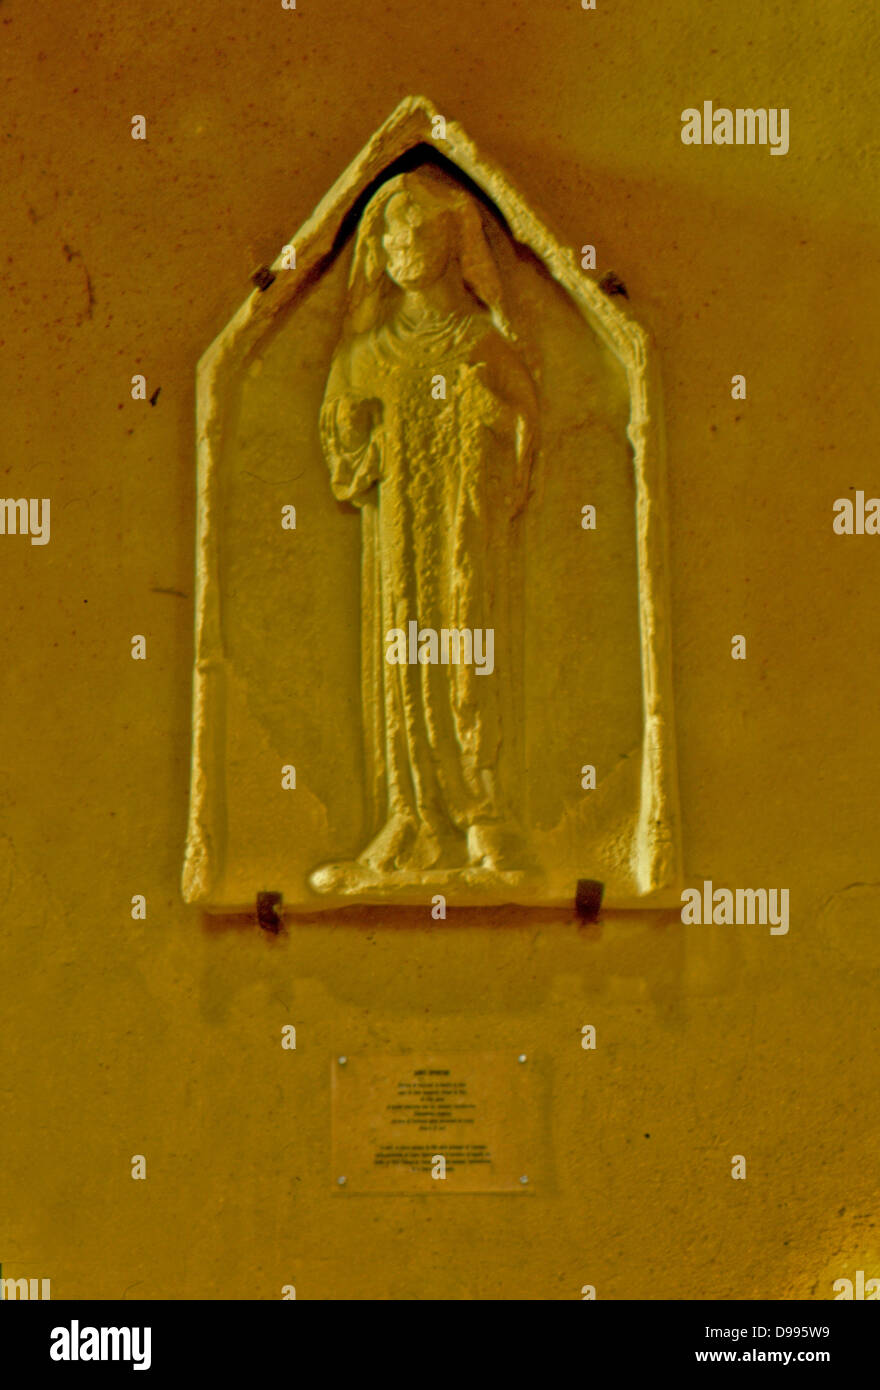 France, Normandy.  Lessay.  Abbatiale - interior showing badly eroded statue. - Stock Image